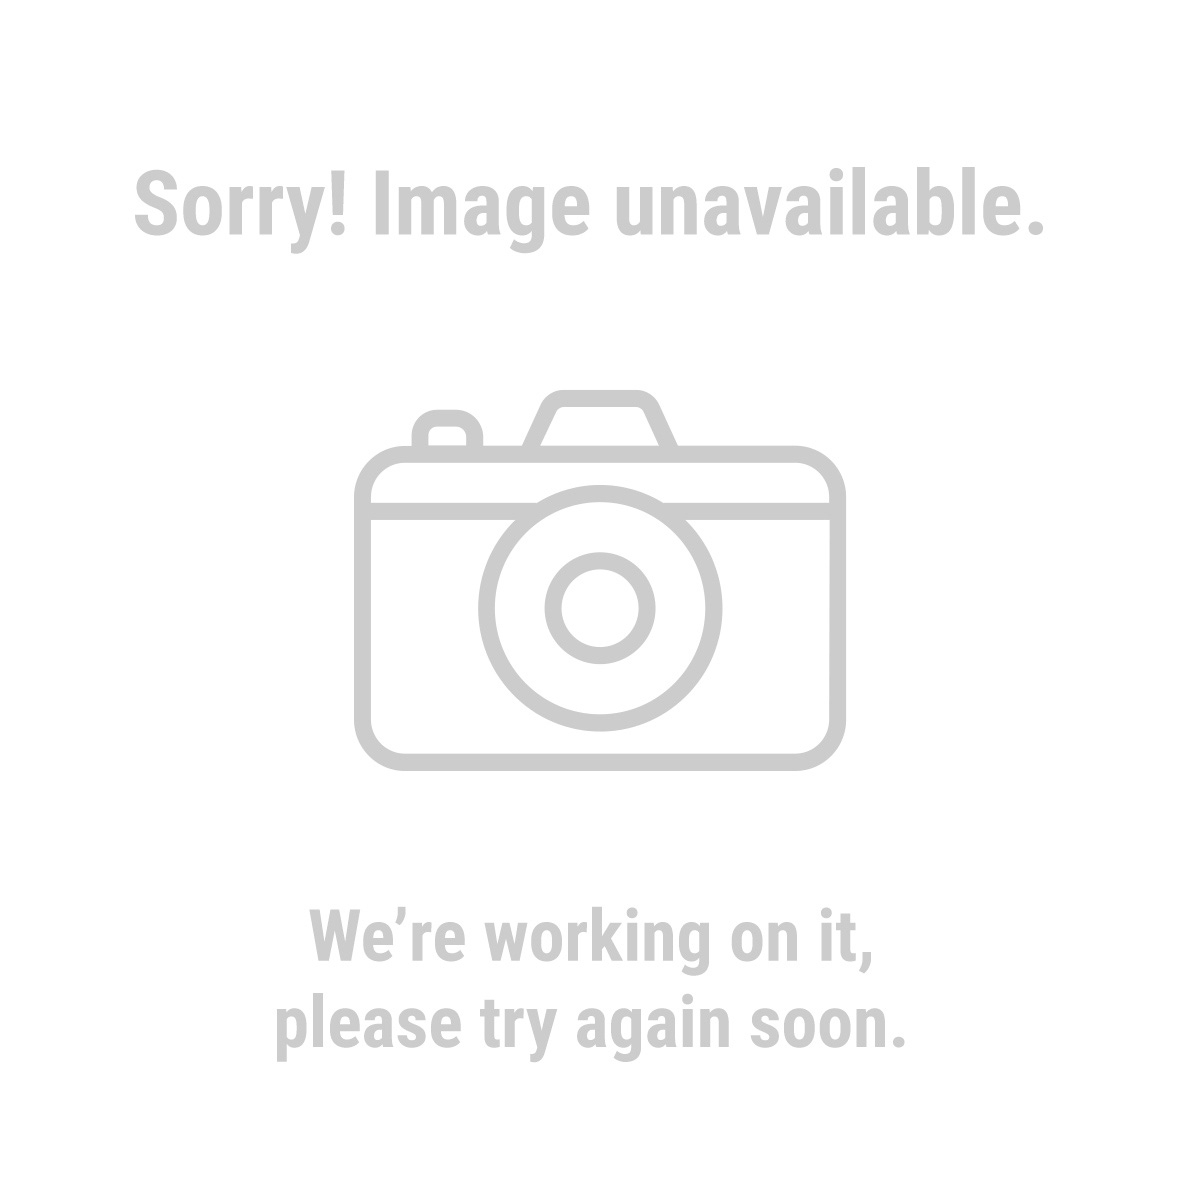 Lancelot 7697 22 Tooth Carving Disc